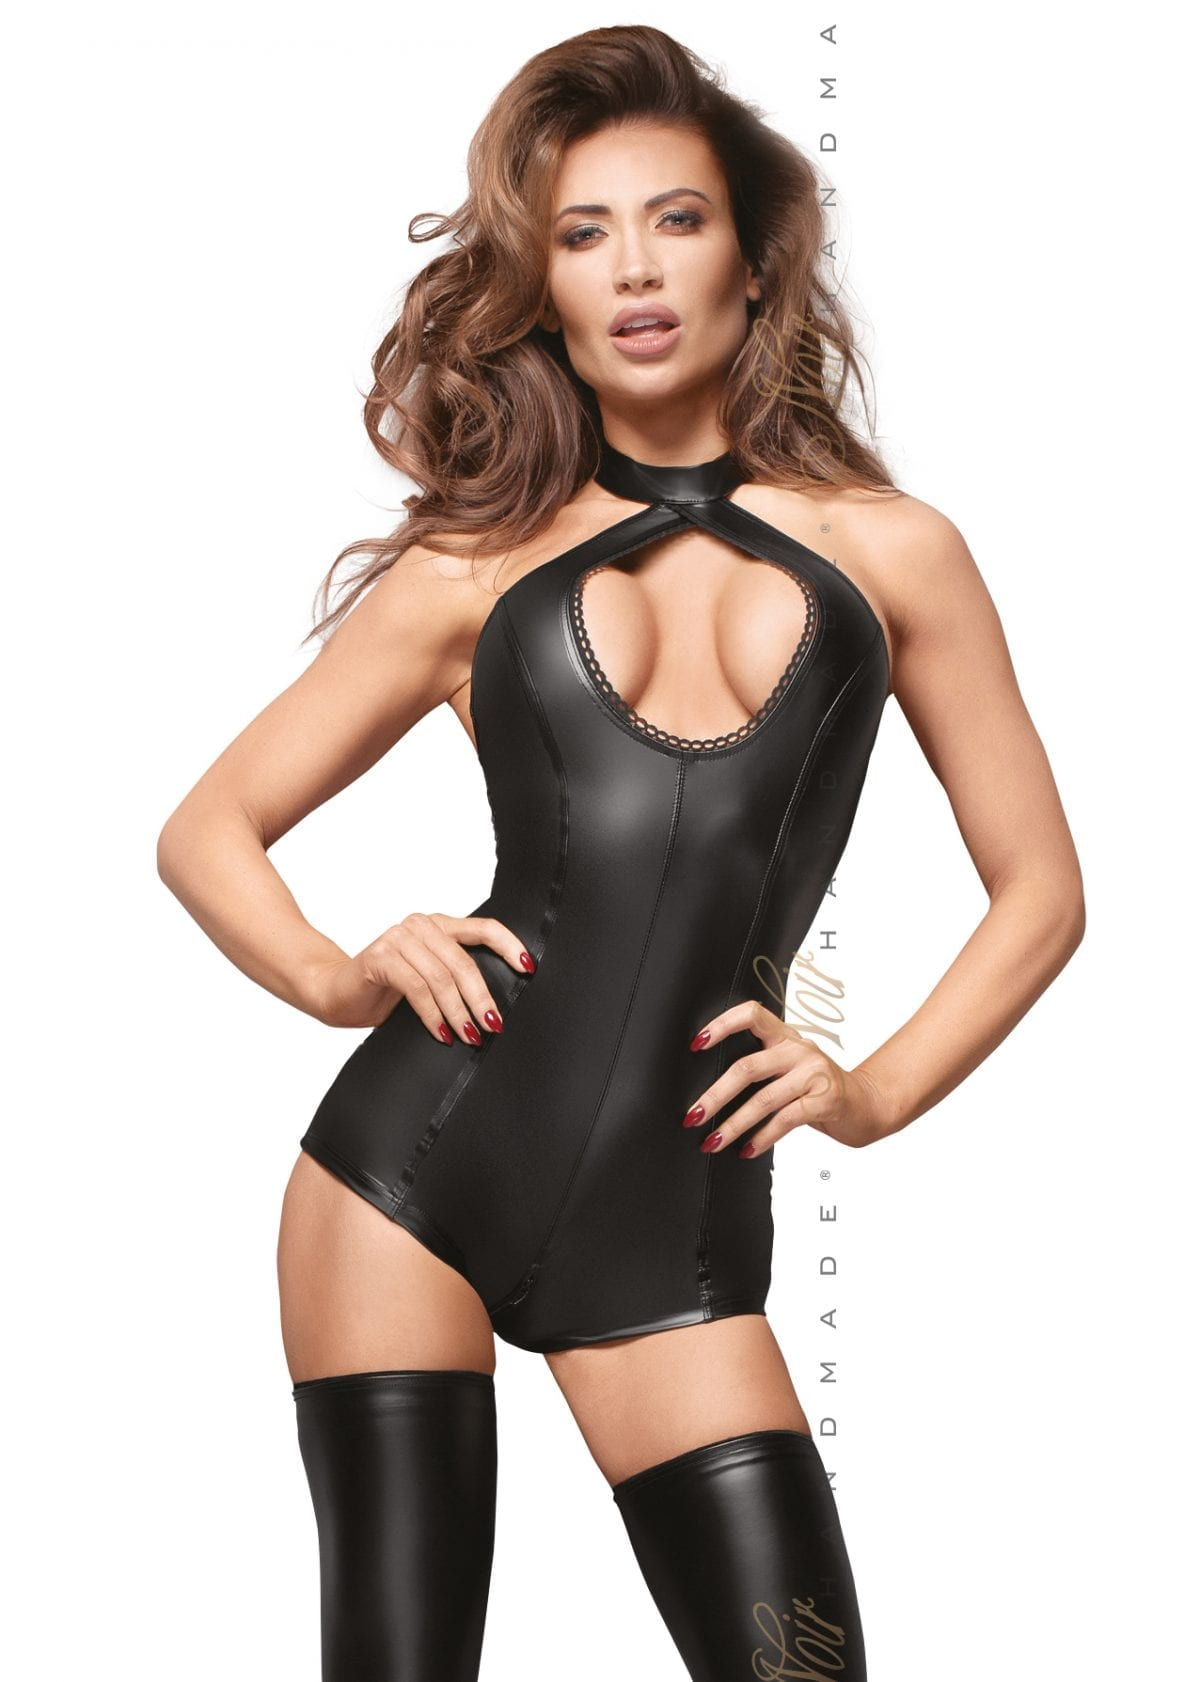 F169 women wetlook fetish clothing black bodysuit with lace around the breast for BDSM bondage wear